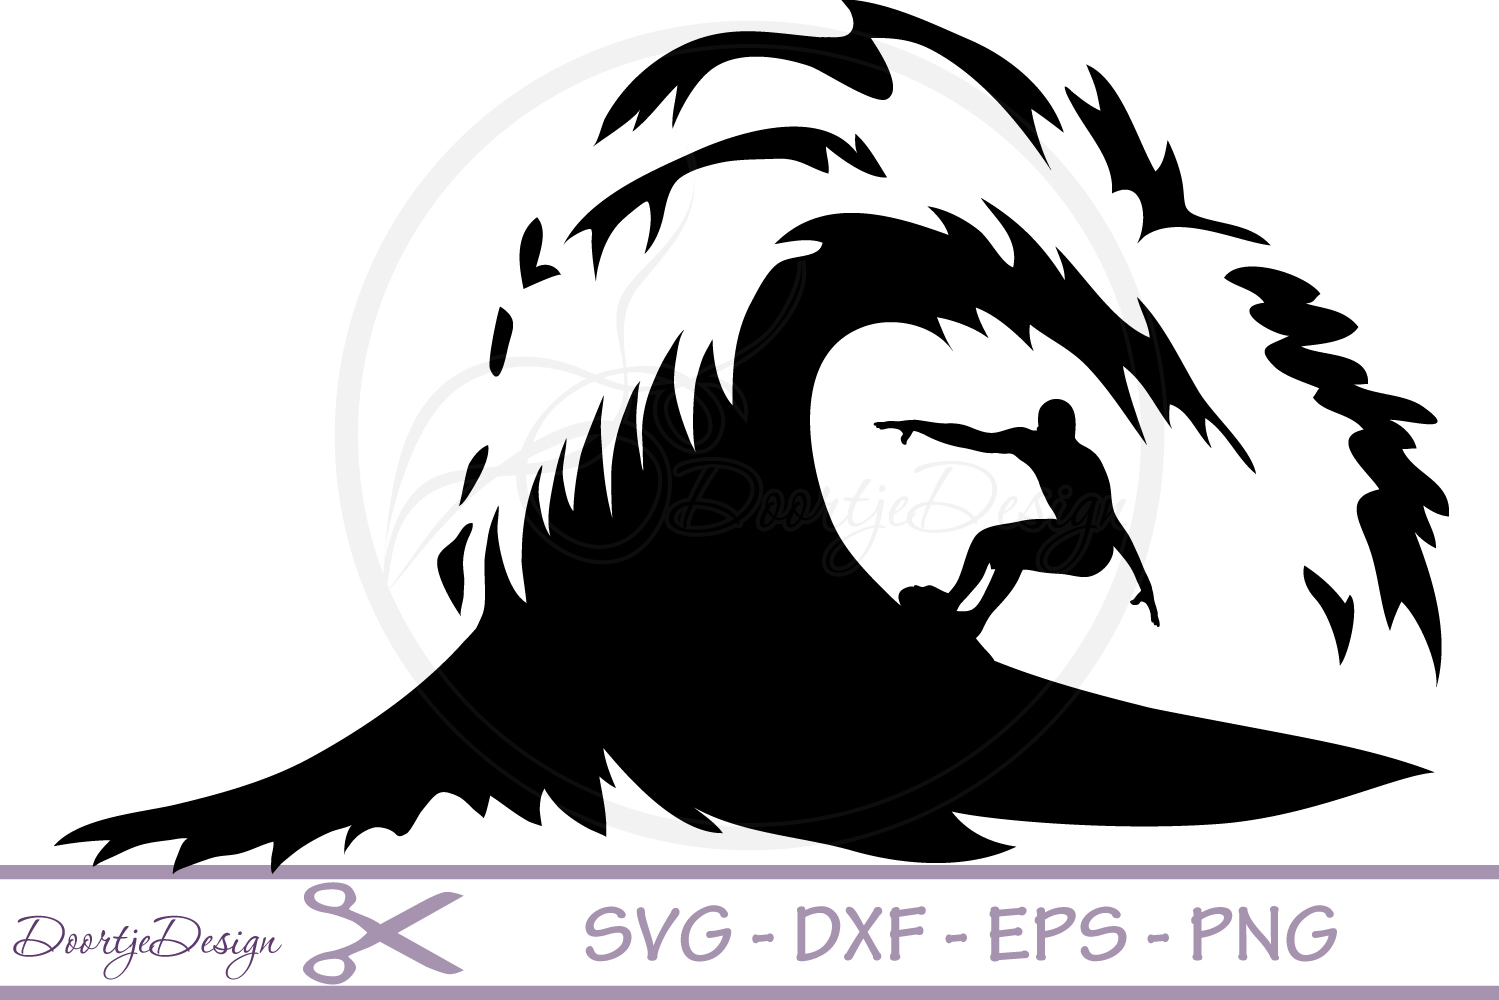 Sea Surf Wave SVG cutting files example image 1